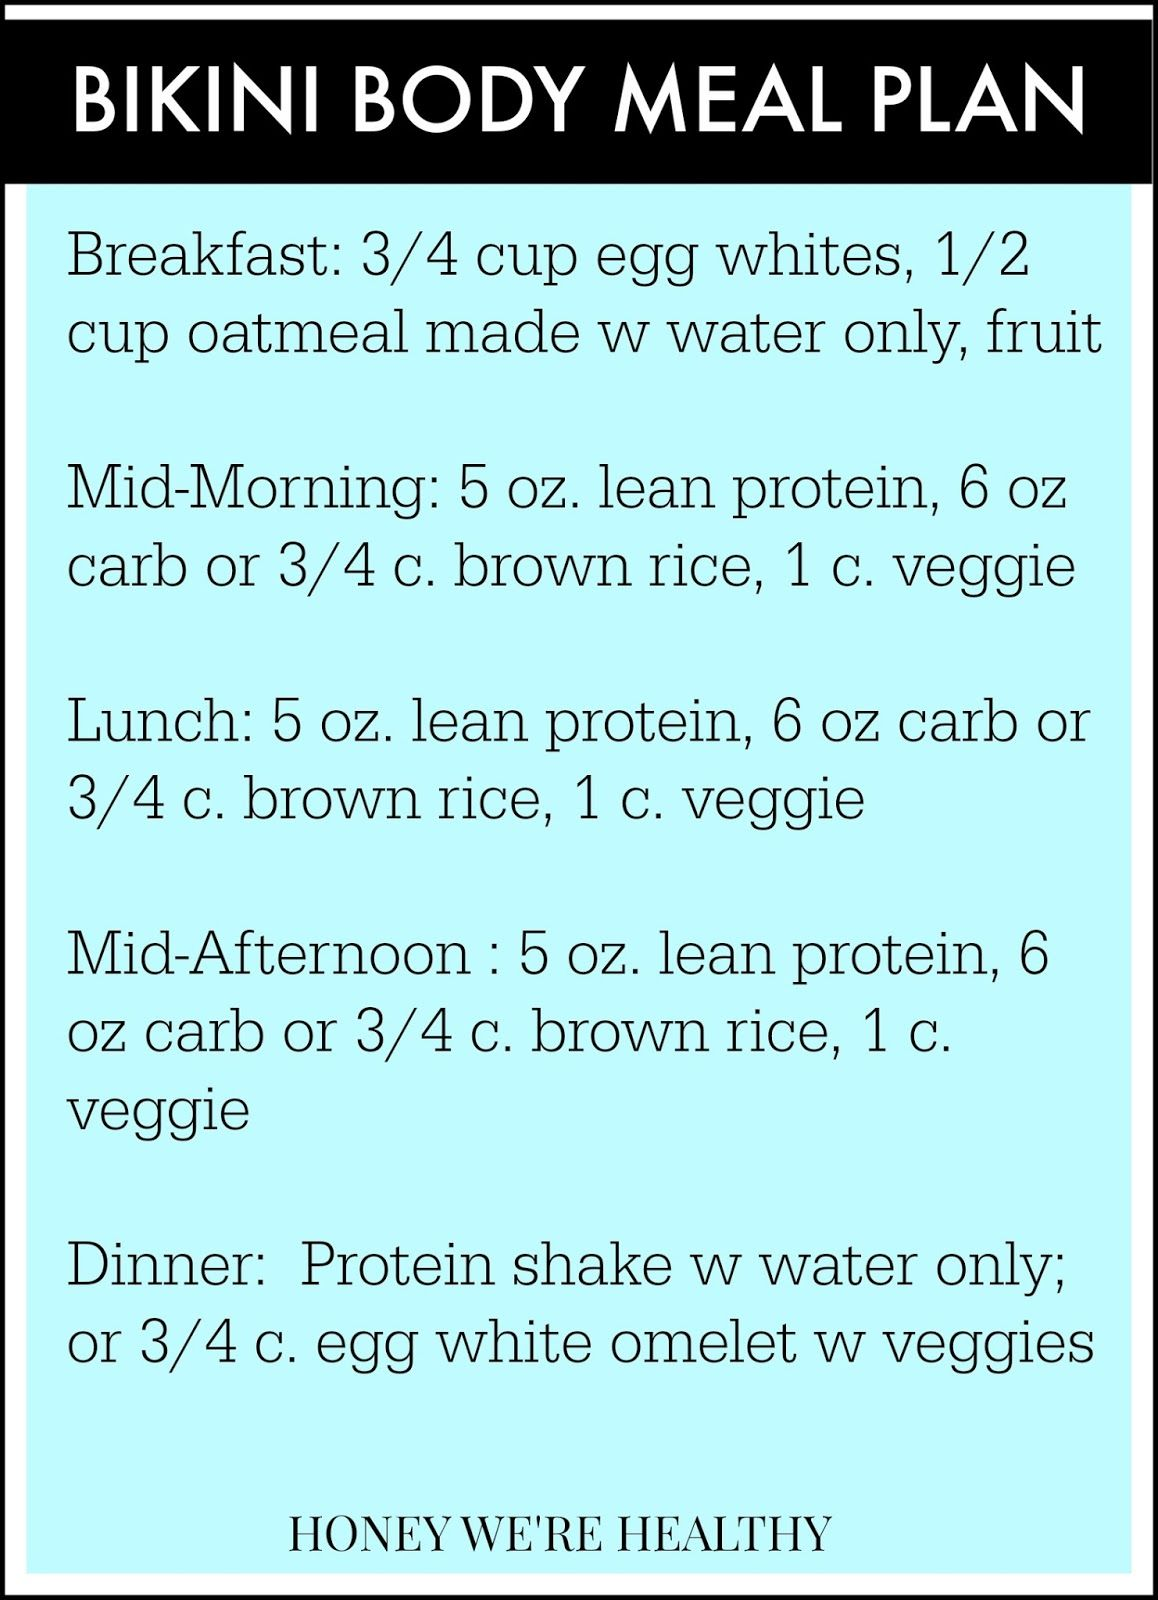 12 Weeks Out // My Bikini Contest Meal Plan (Honey We're Healthy ...